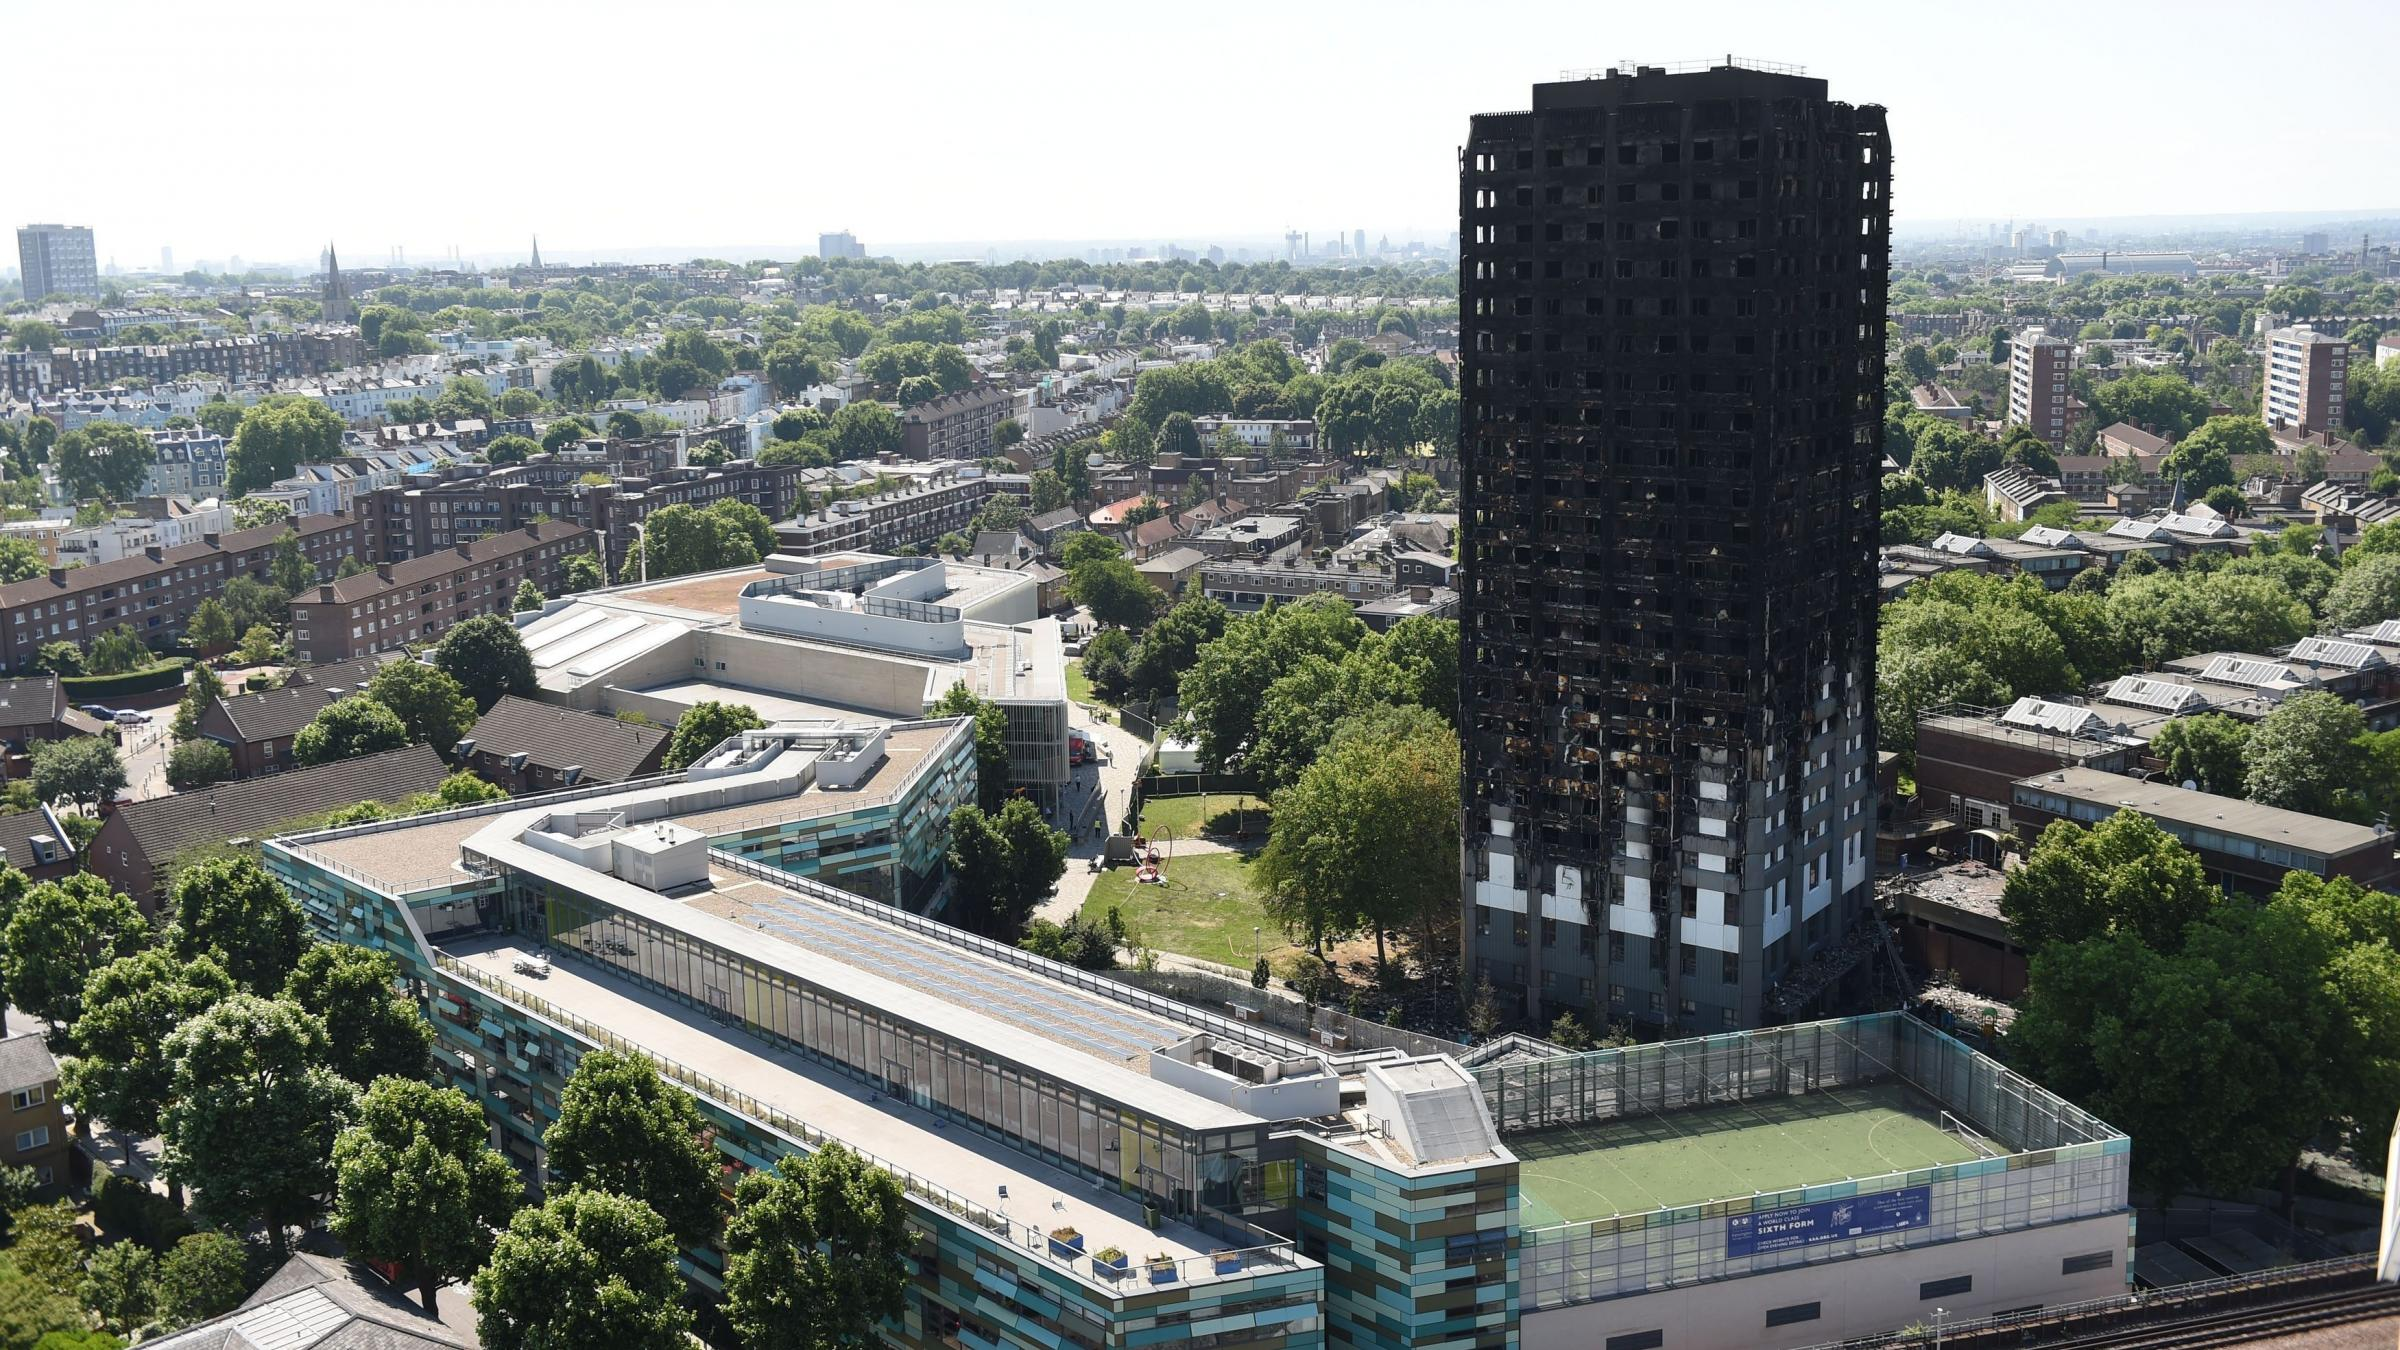 London Tower Block Fire Death Toll Rises to 58